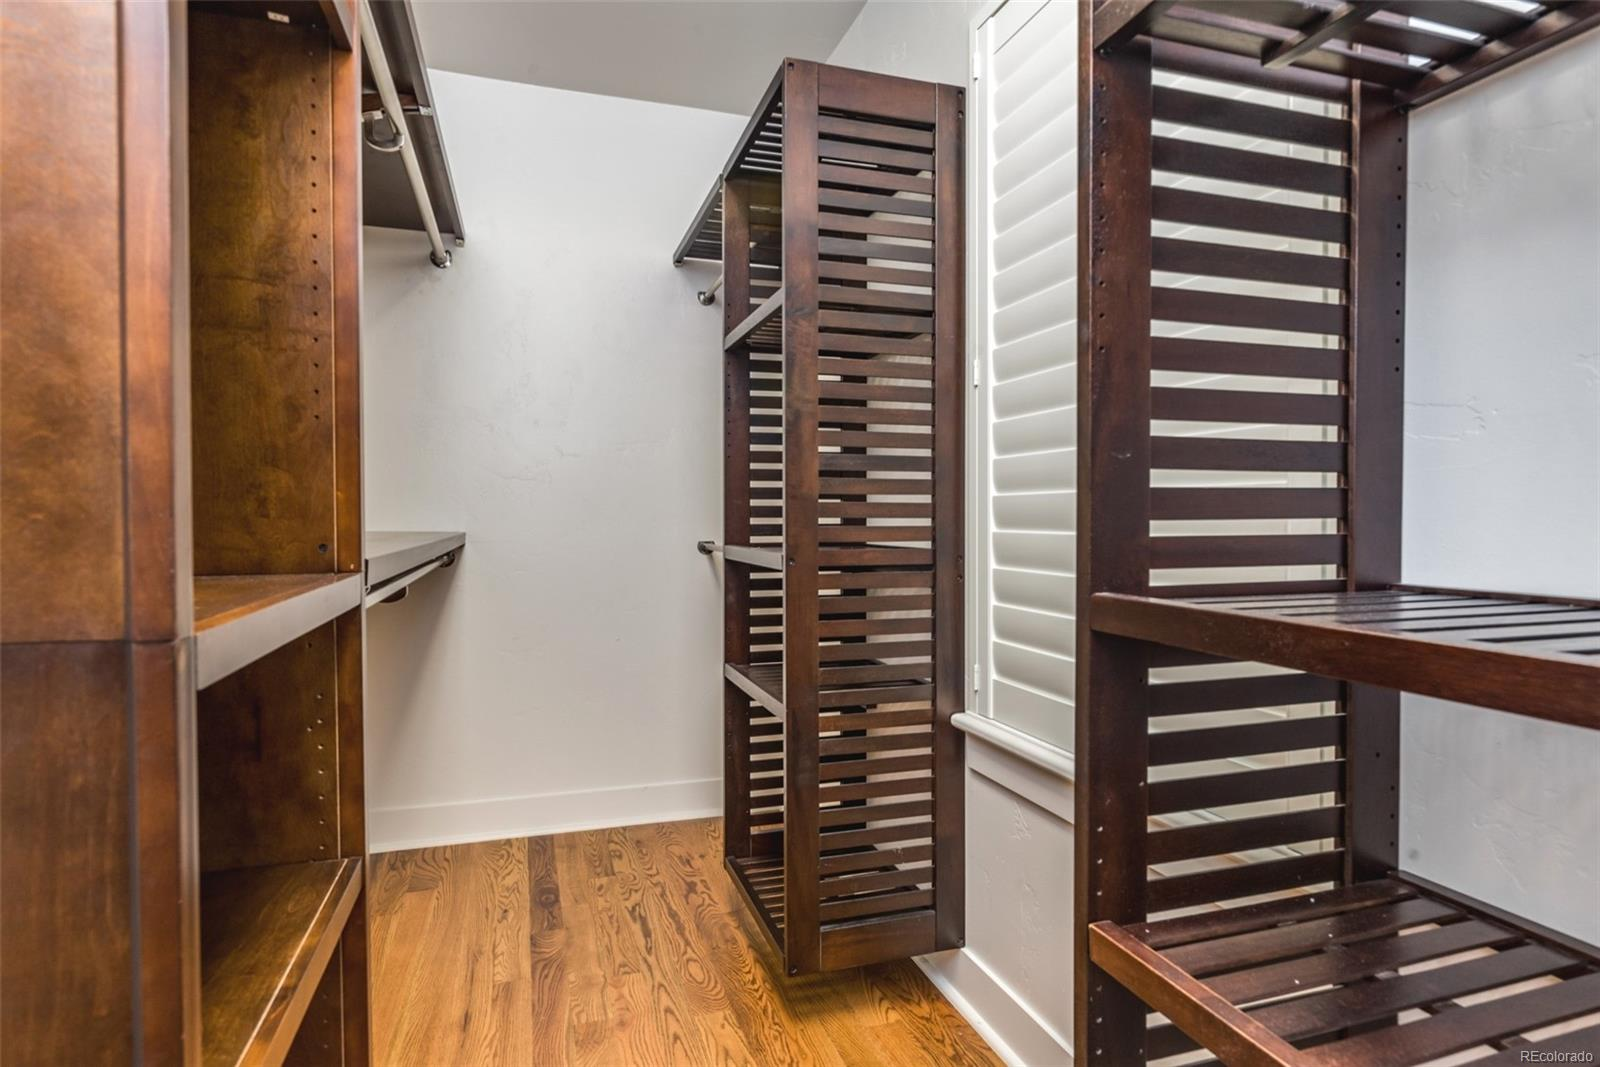 LOTS OF ROOM IN THE MASTER BEDROOM WALK-IN CLOSET!